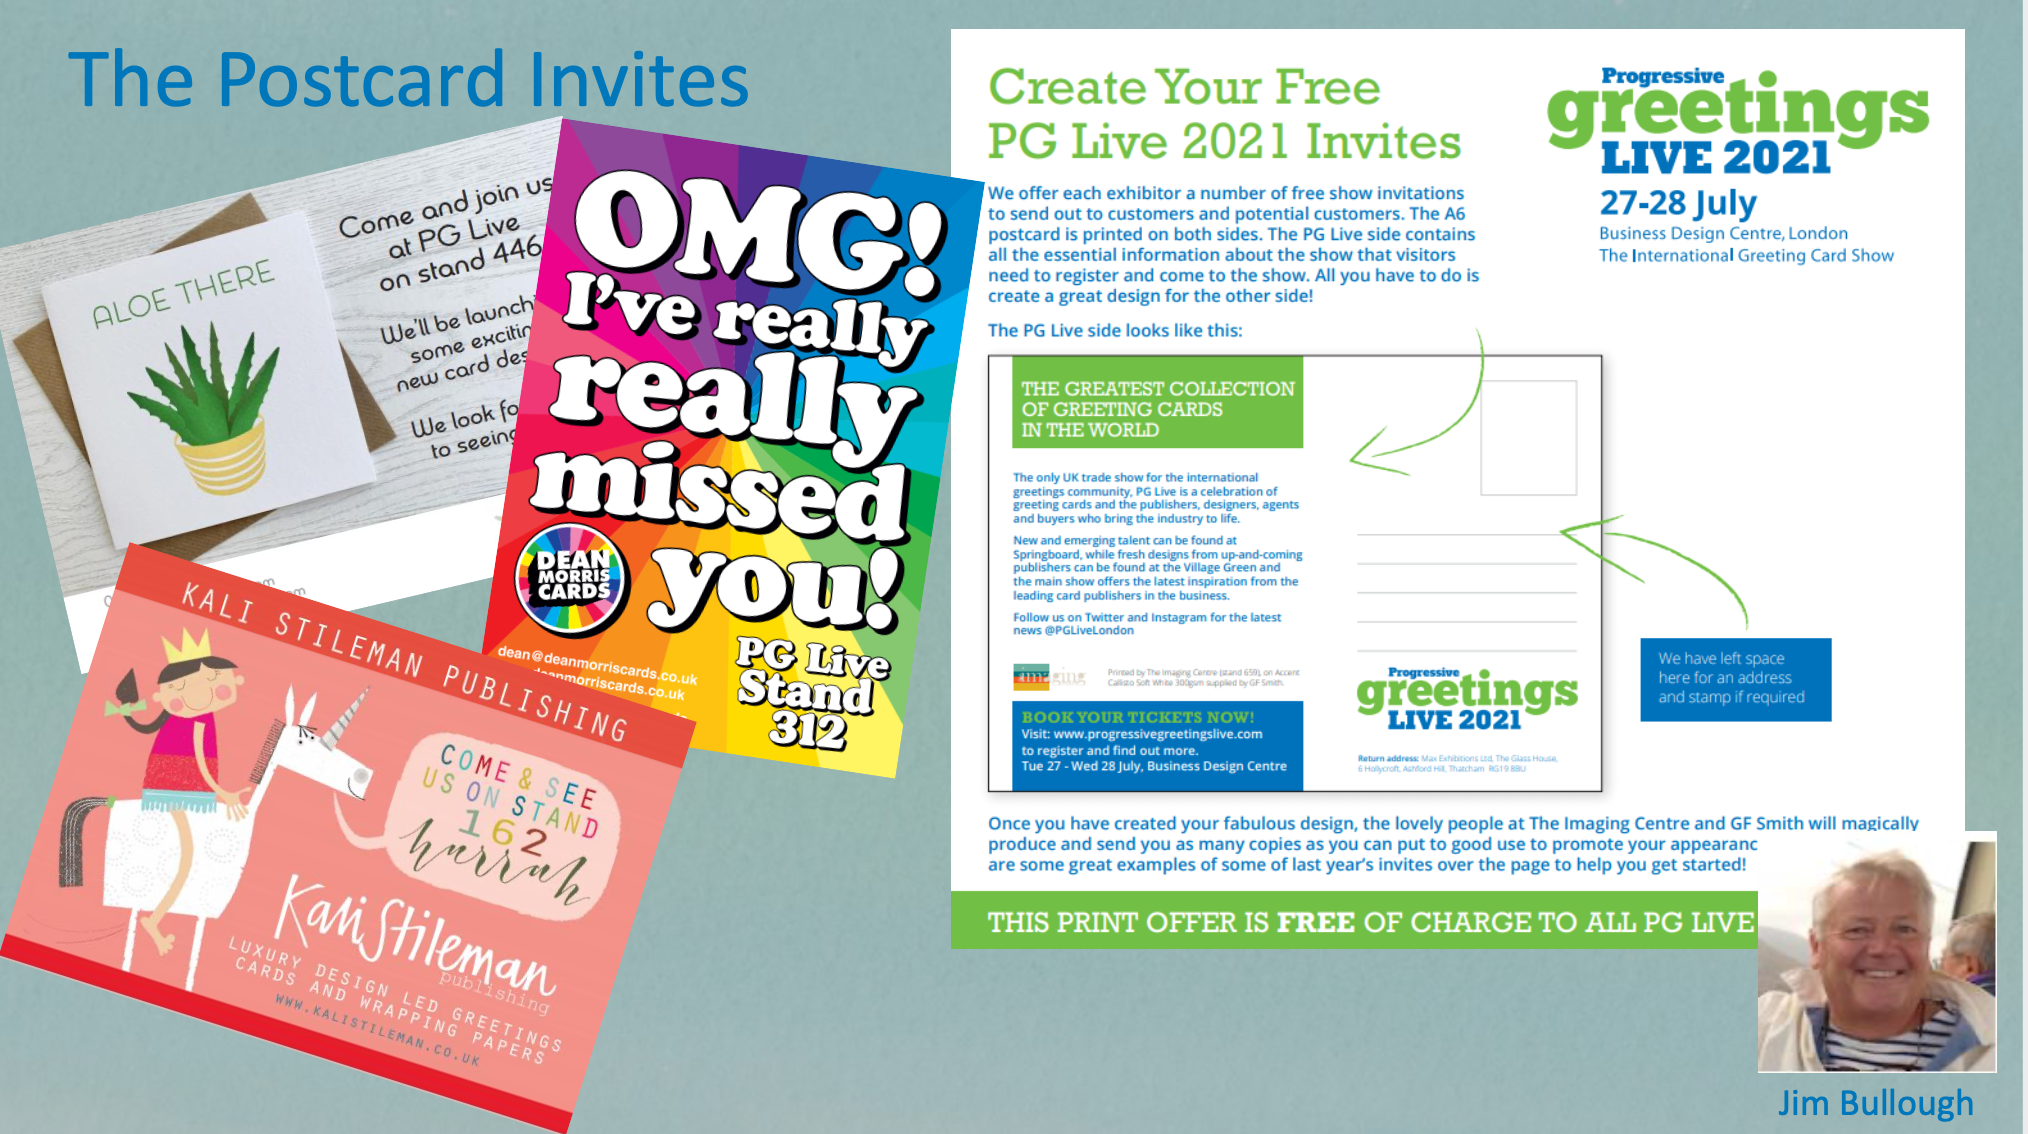 Above: PG Live exhibitors are able to have special postcards printed for free by The Imaging Centre to spread the love.